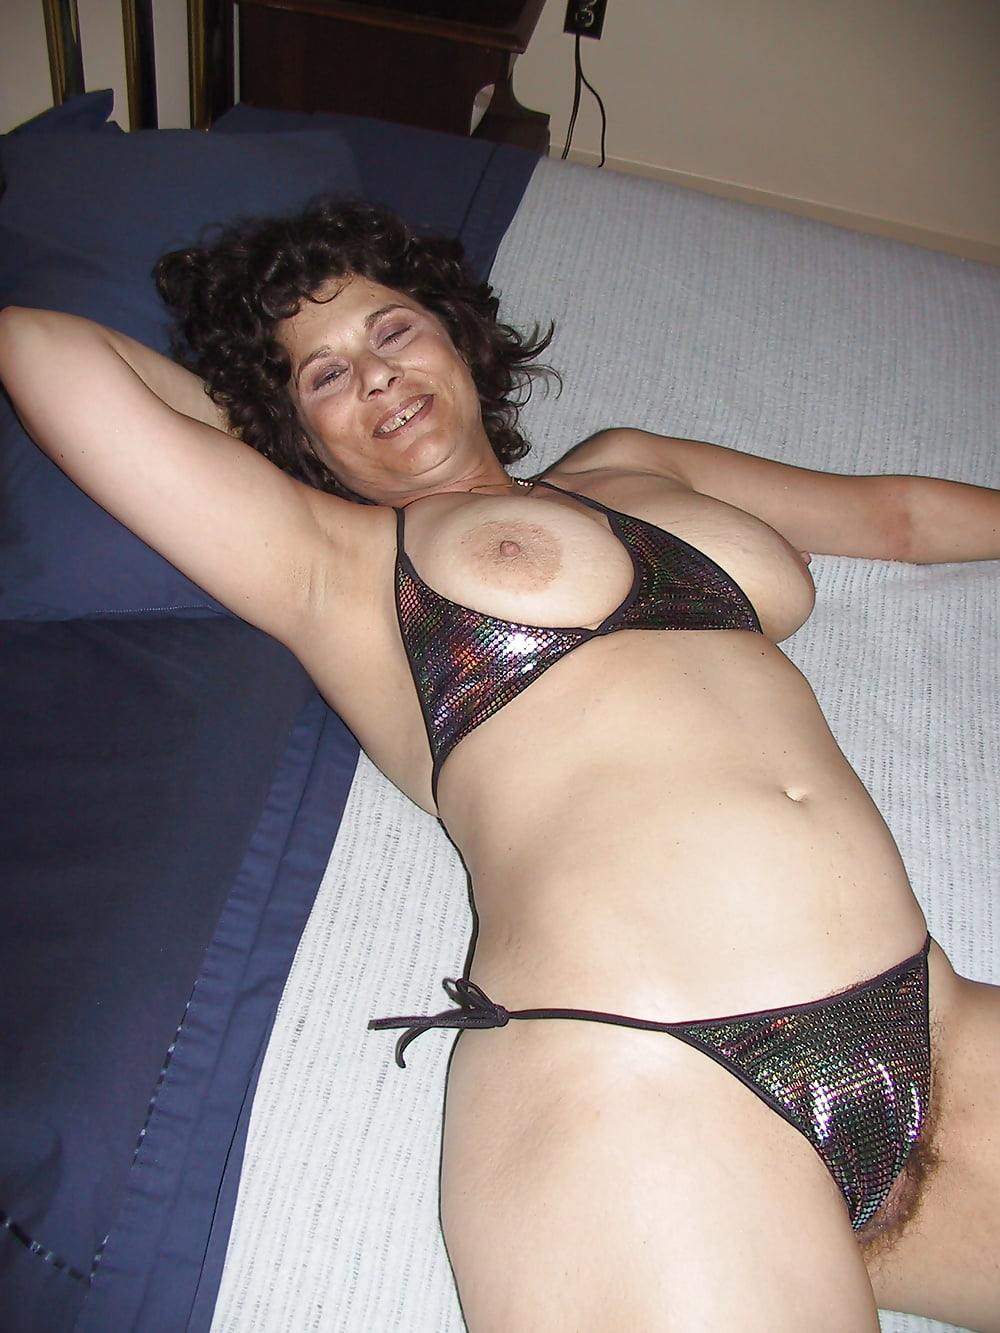 Masturbates with her clothes on